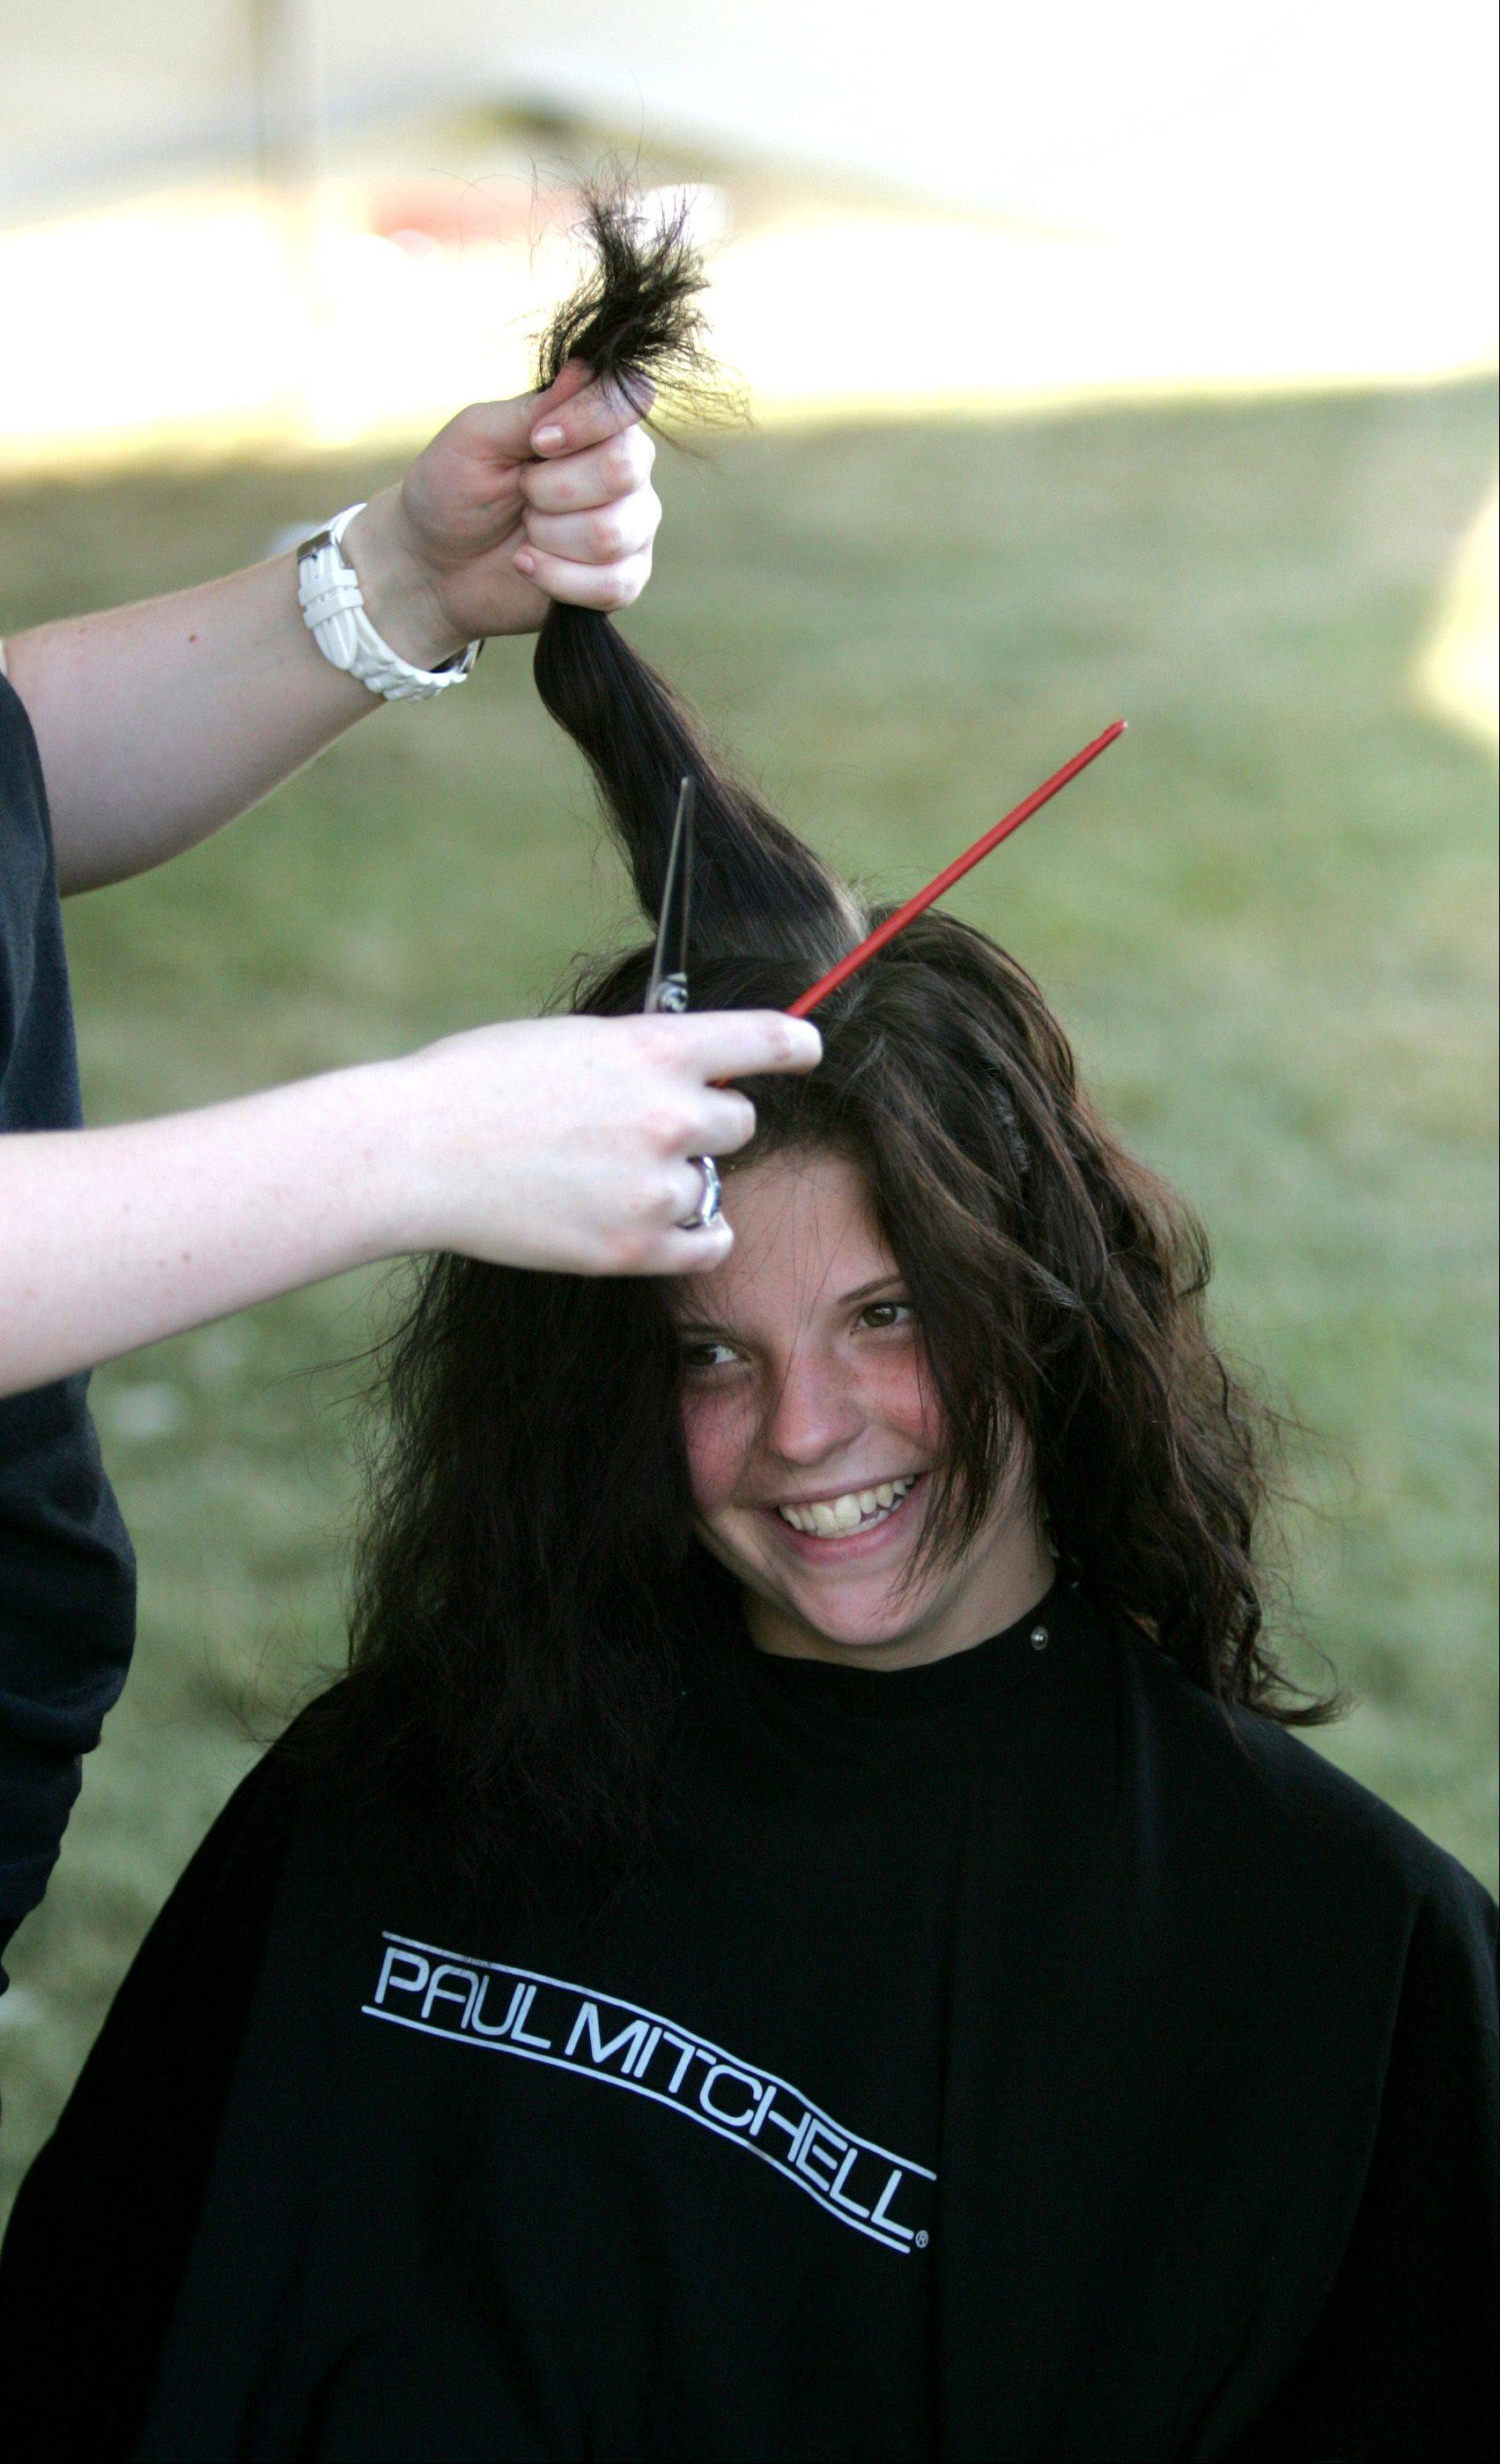 Britney Culp gets her hair cut by Paul Mitchell the School Chicago as part of a St. Baldricks fundraiser at the Taste of Lombard in Madison Meadow Park. Paul Mitchell the School Chicago raised over $88,000 for charity last year.